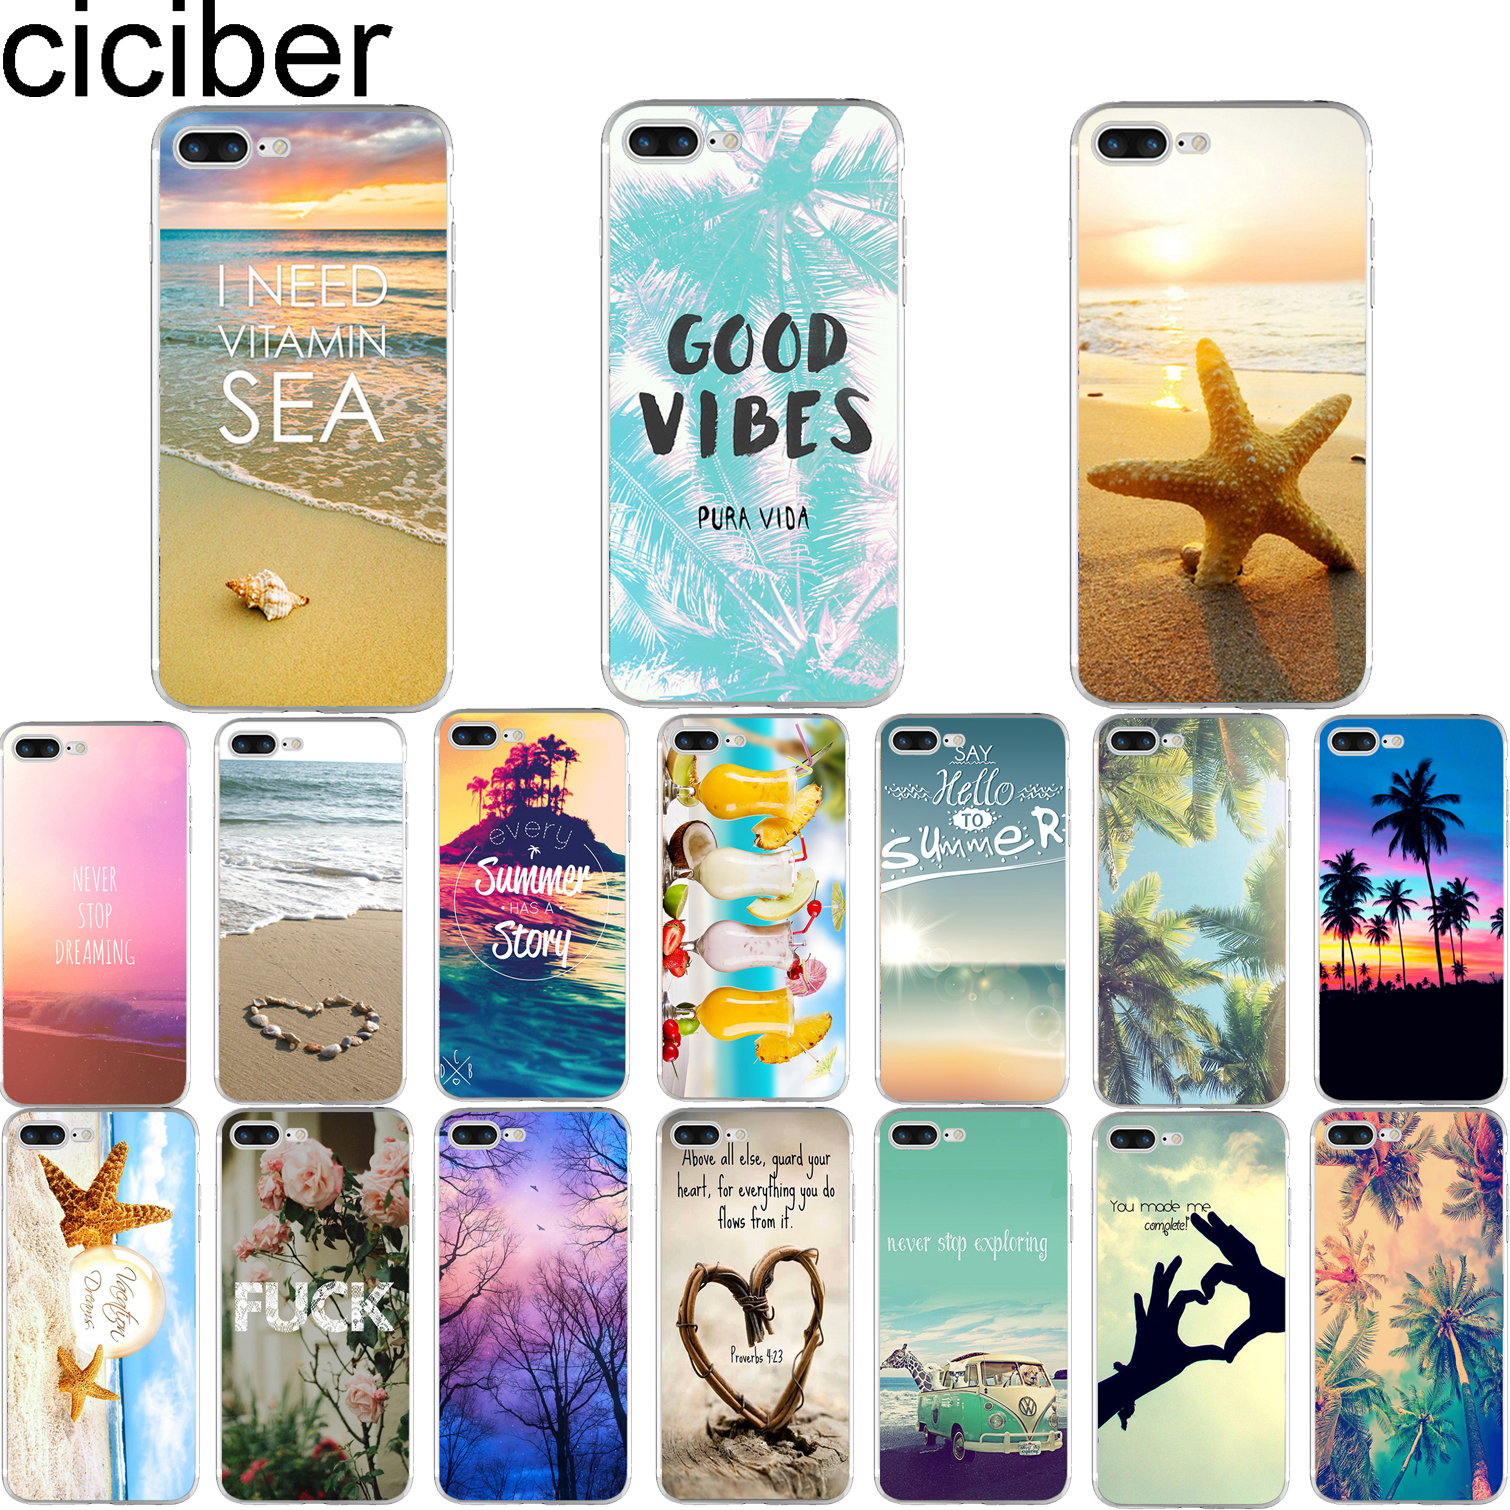 ciciber Summer Beach Landscape Pattern Design Soft Silicone Phone Cases Cover for Iphone 7 6 6S